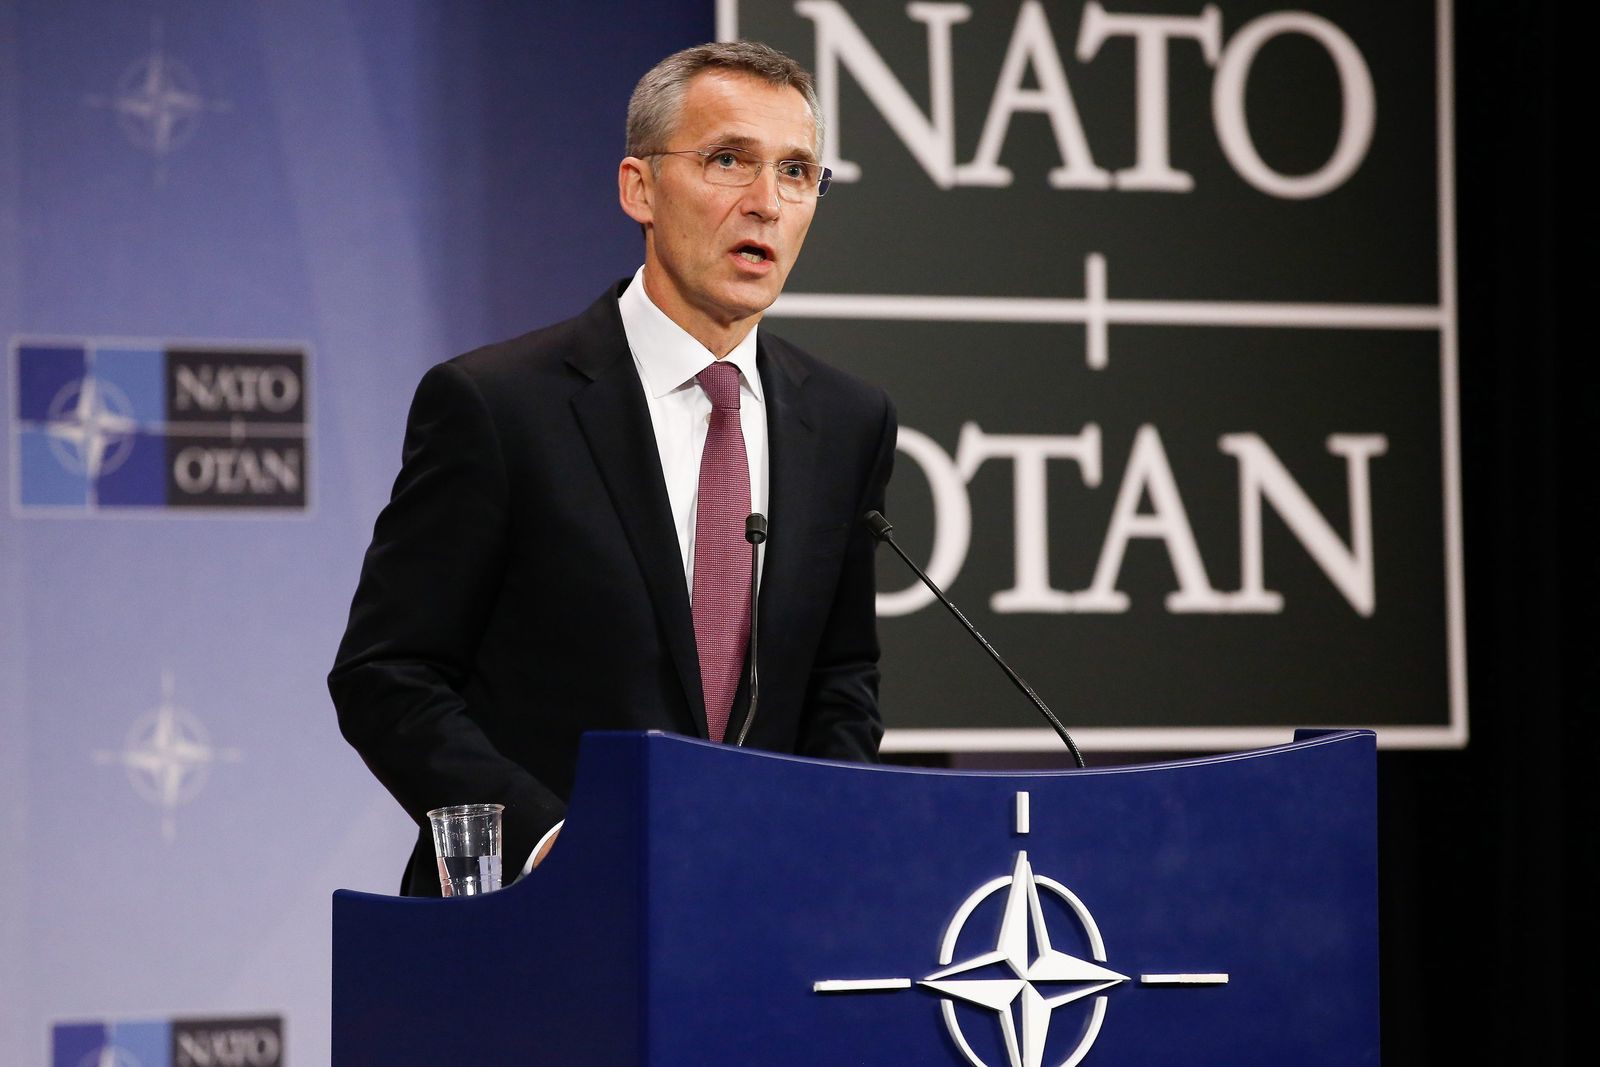 Meeting of Nato Ministers of Foreign Affairs